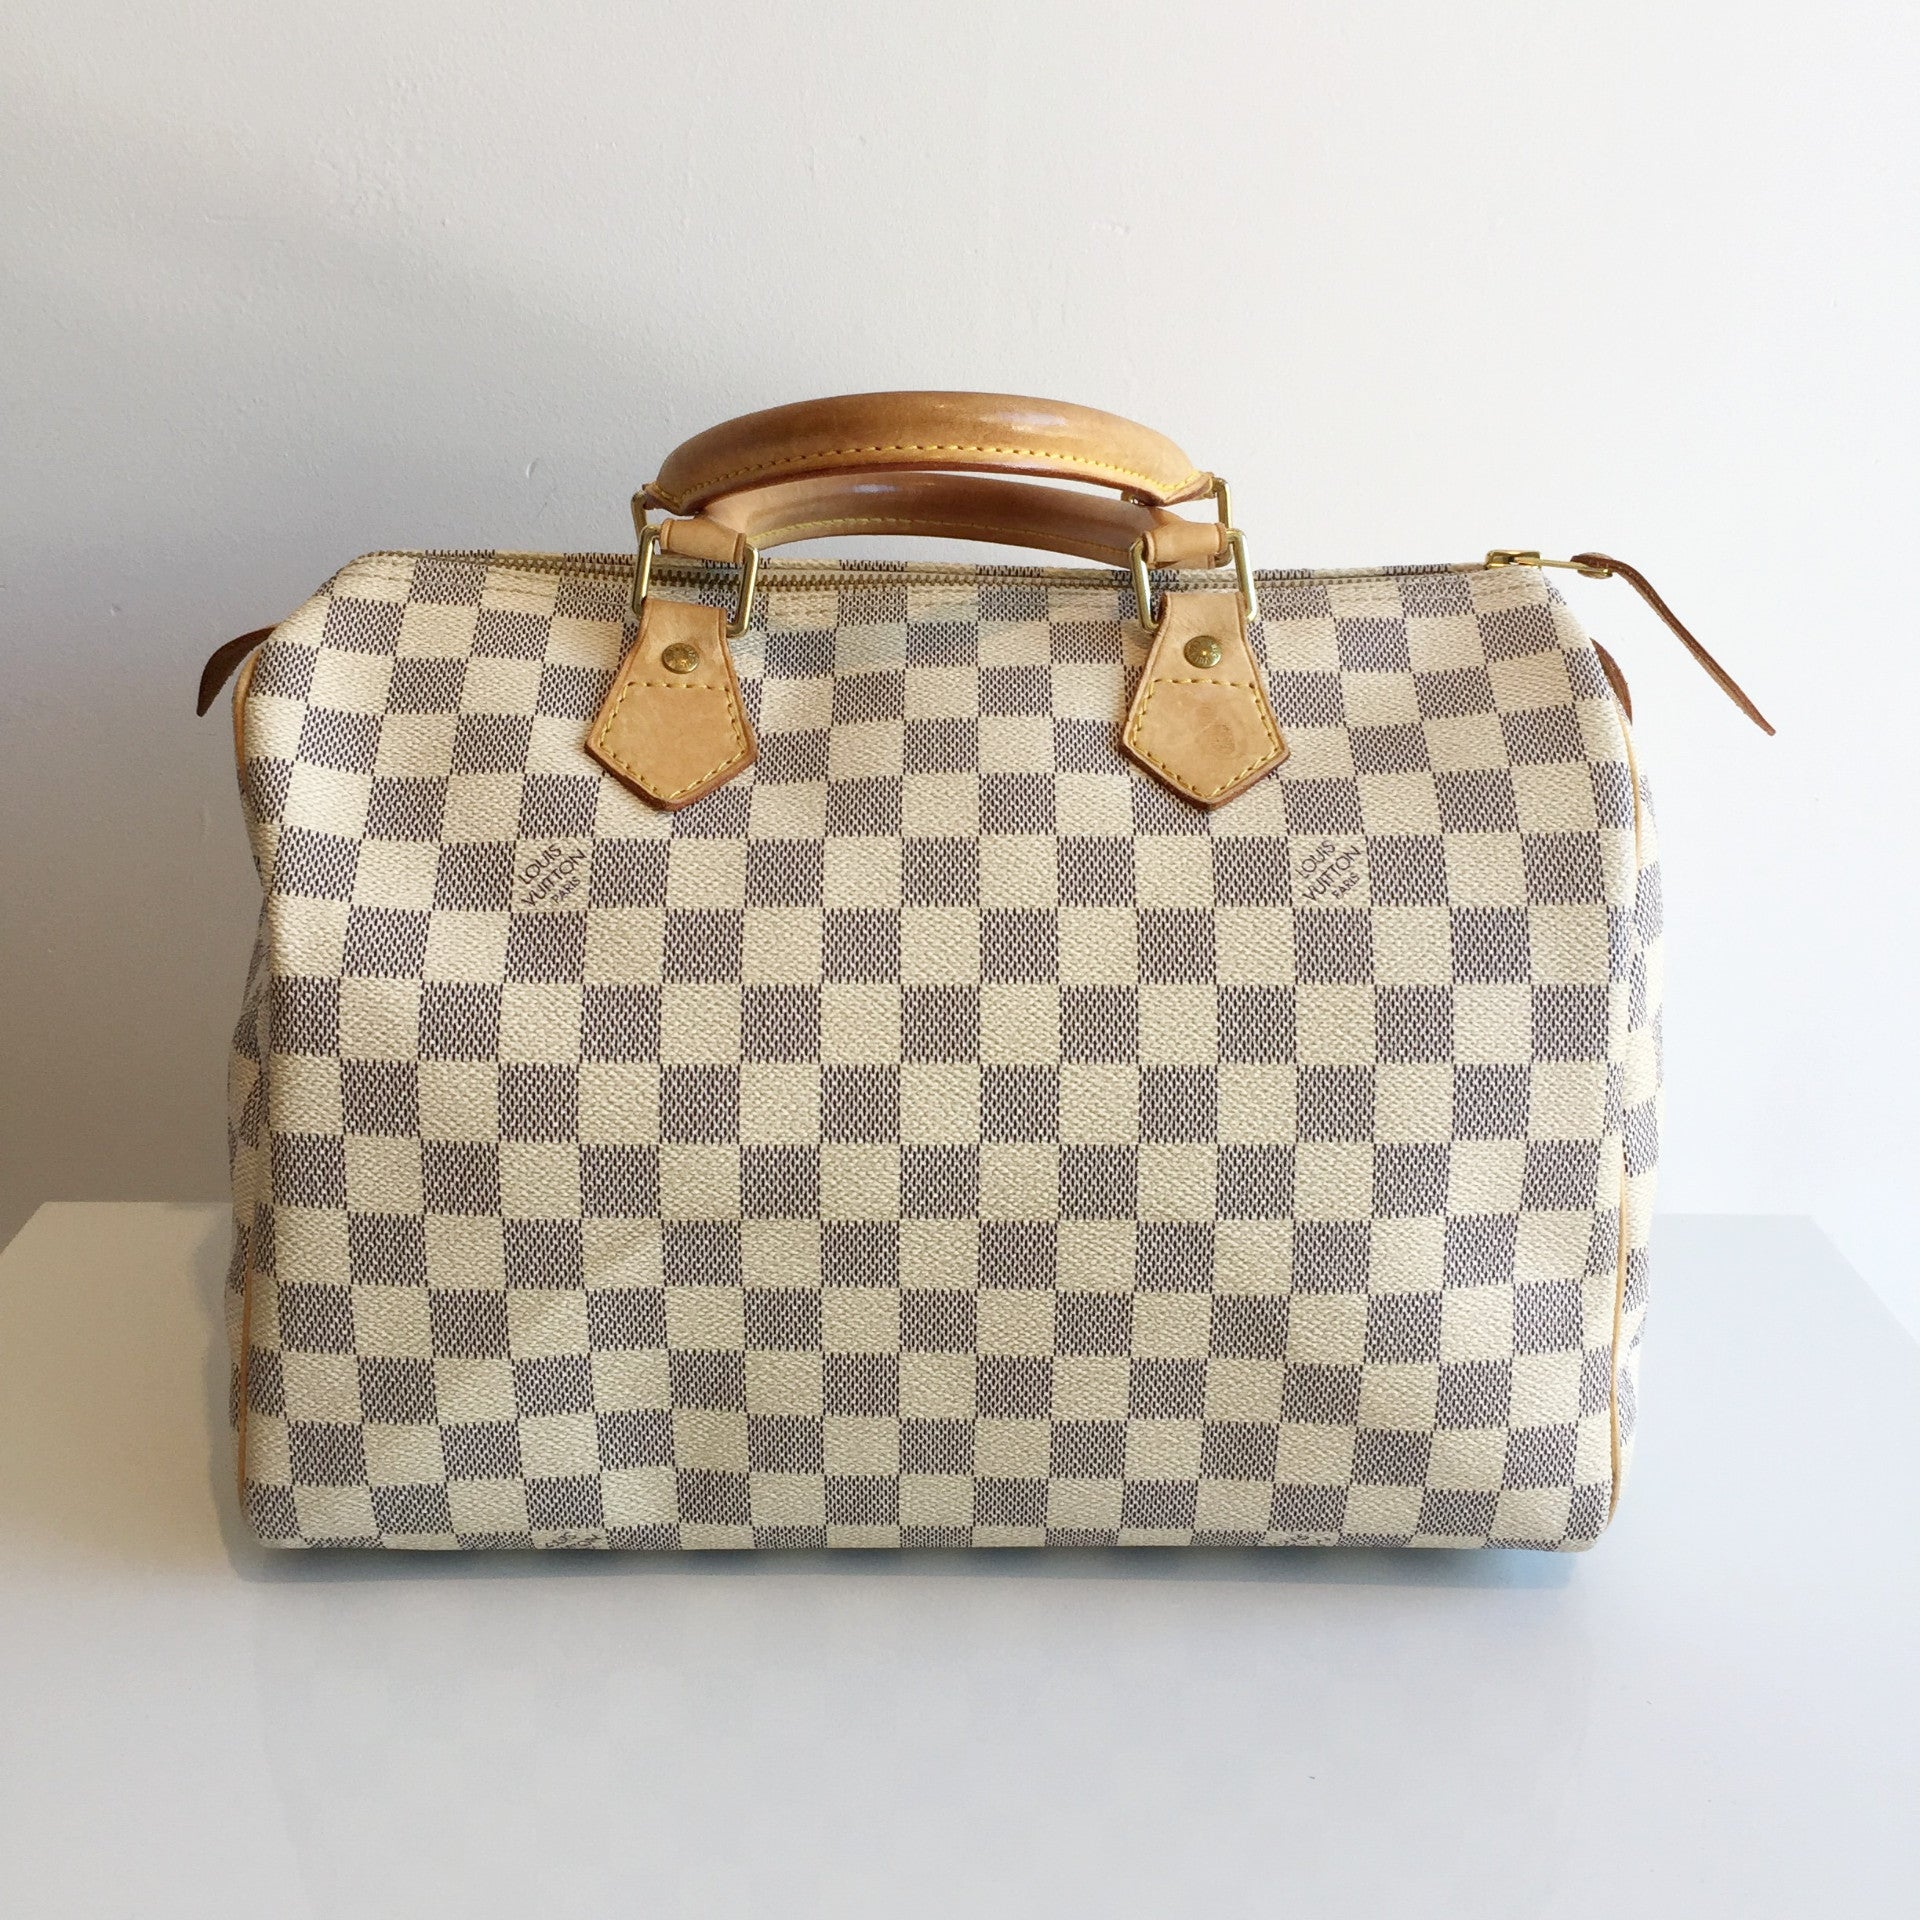 Authentic LOUIS VUITTON Speedy 30 Azur